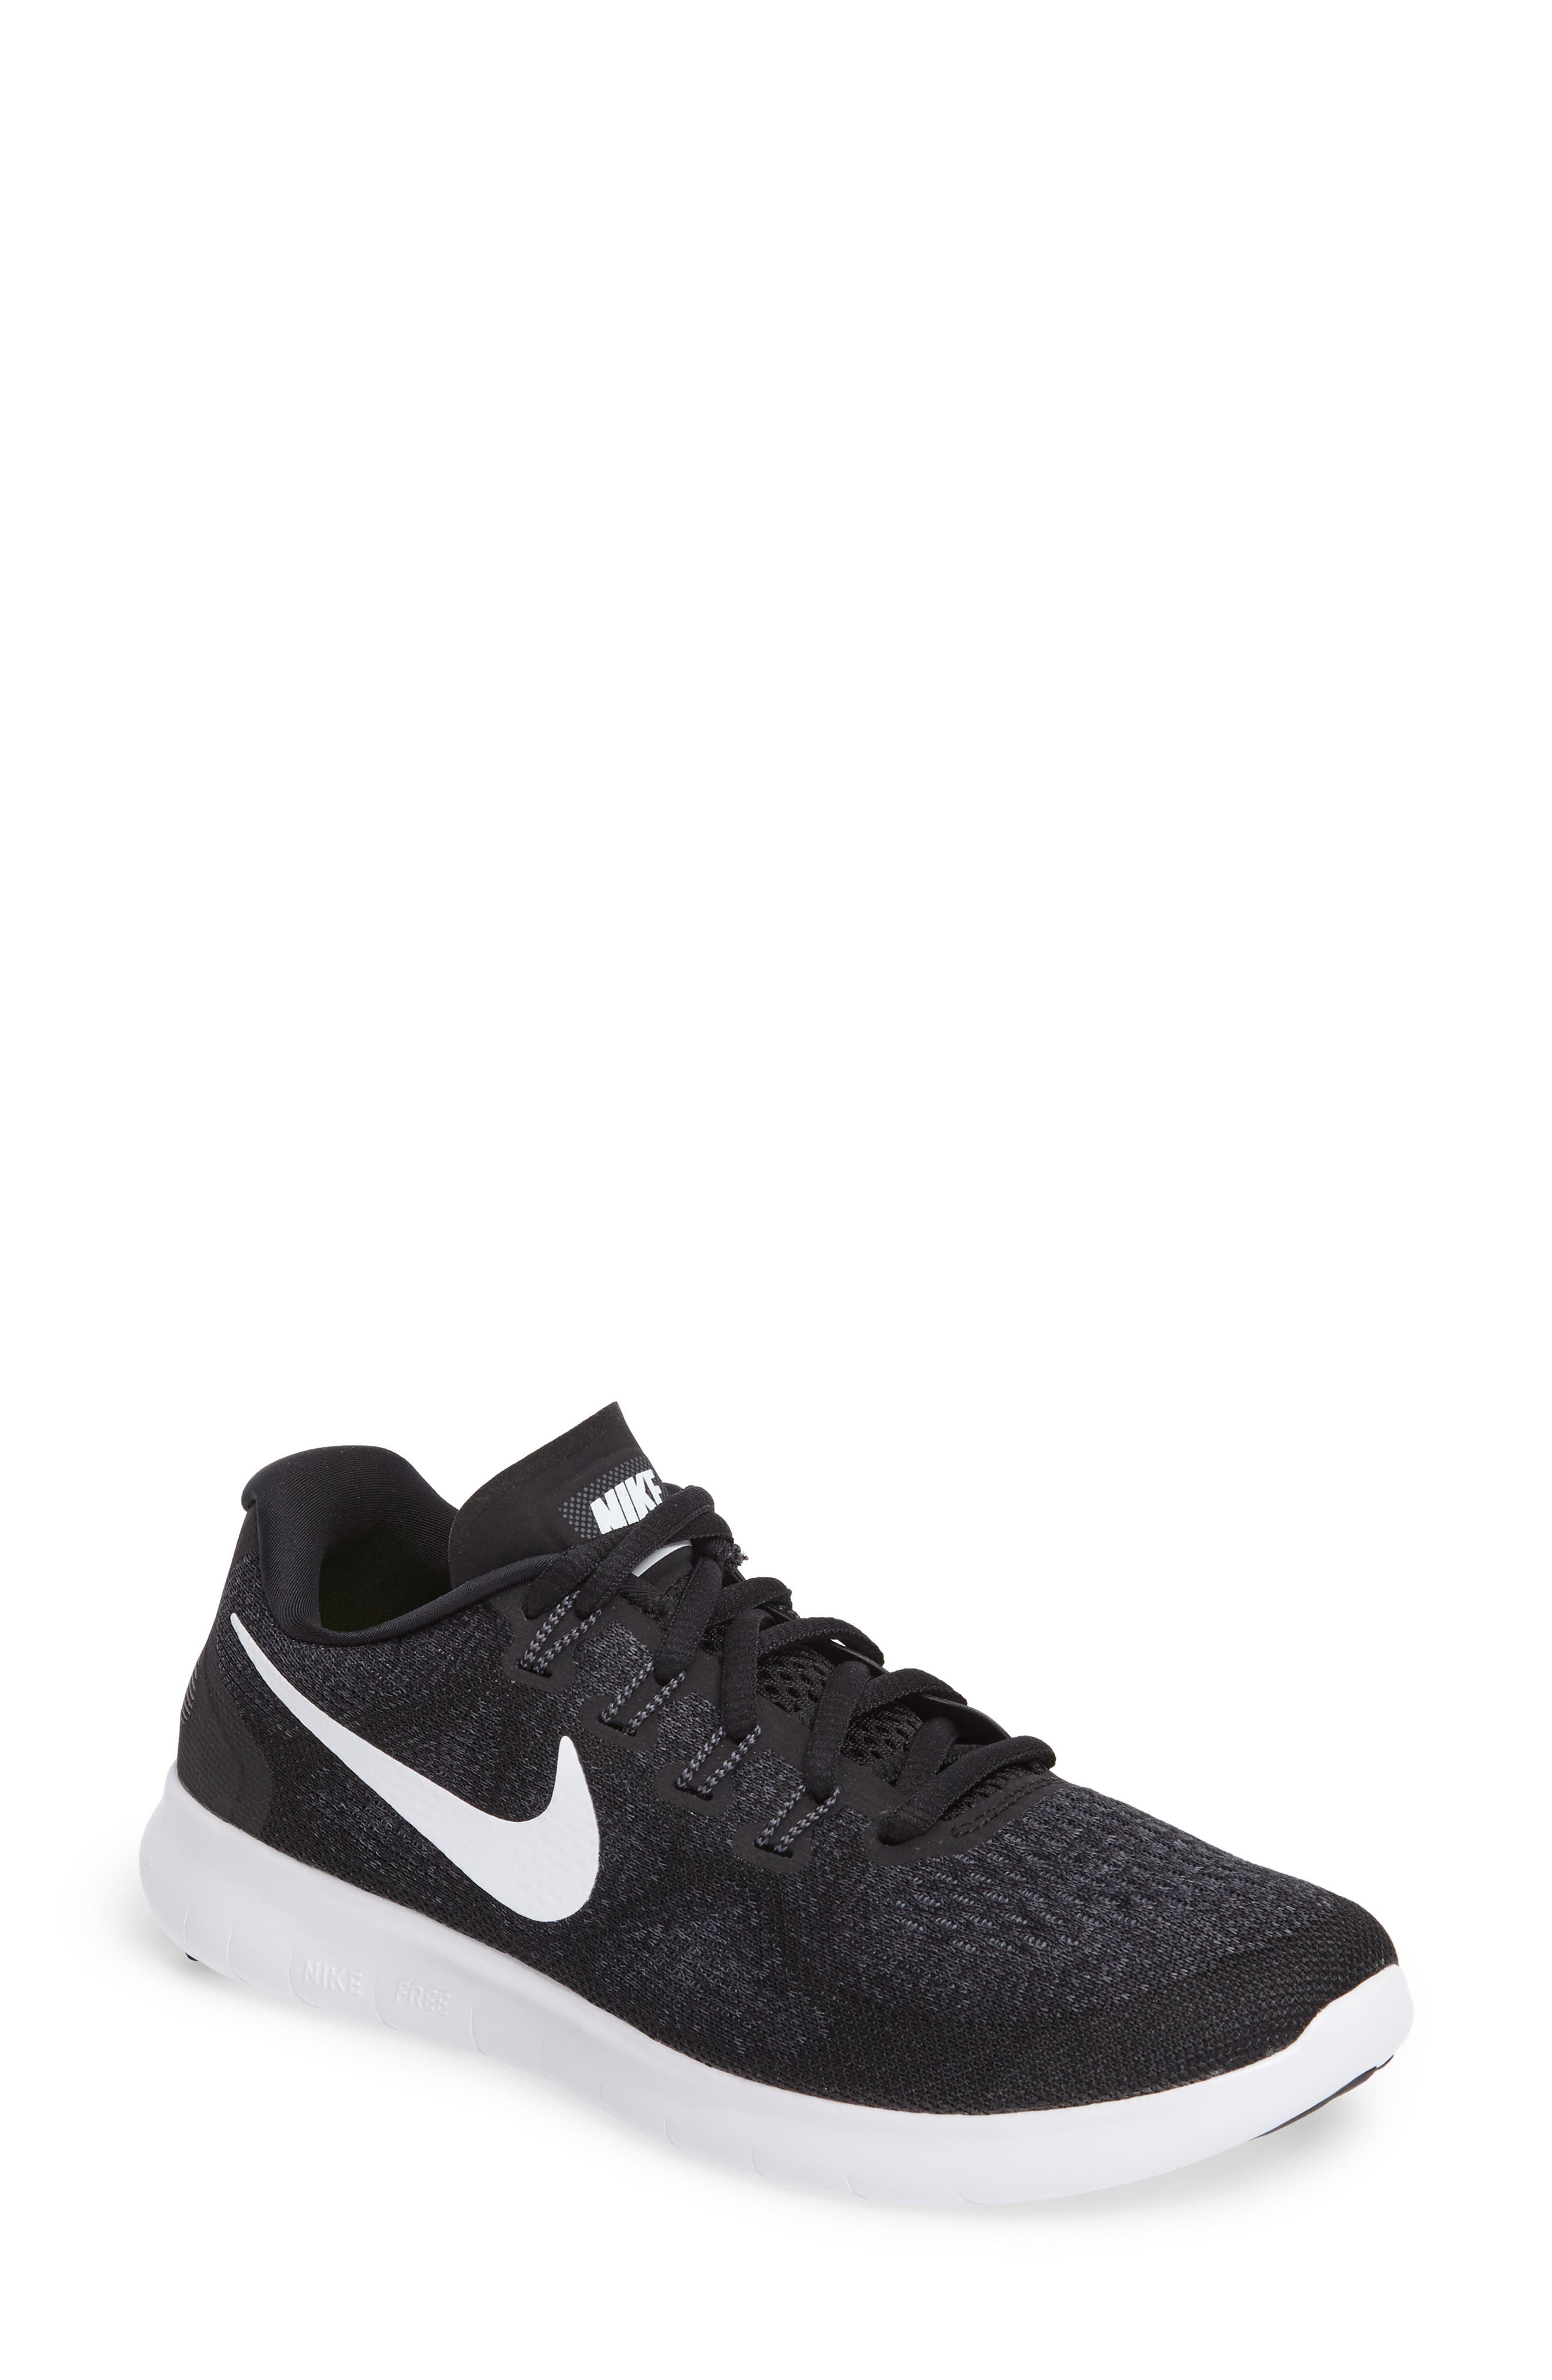 Free RN 2 Running Shoe,                         Main,                         color, Black/ White/ Grey/ Anthracite